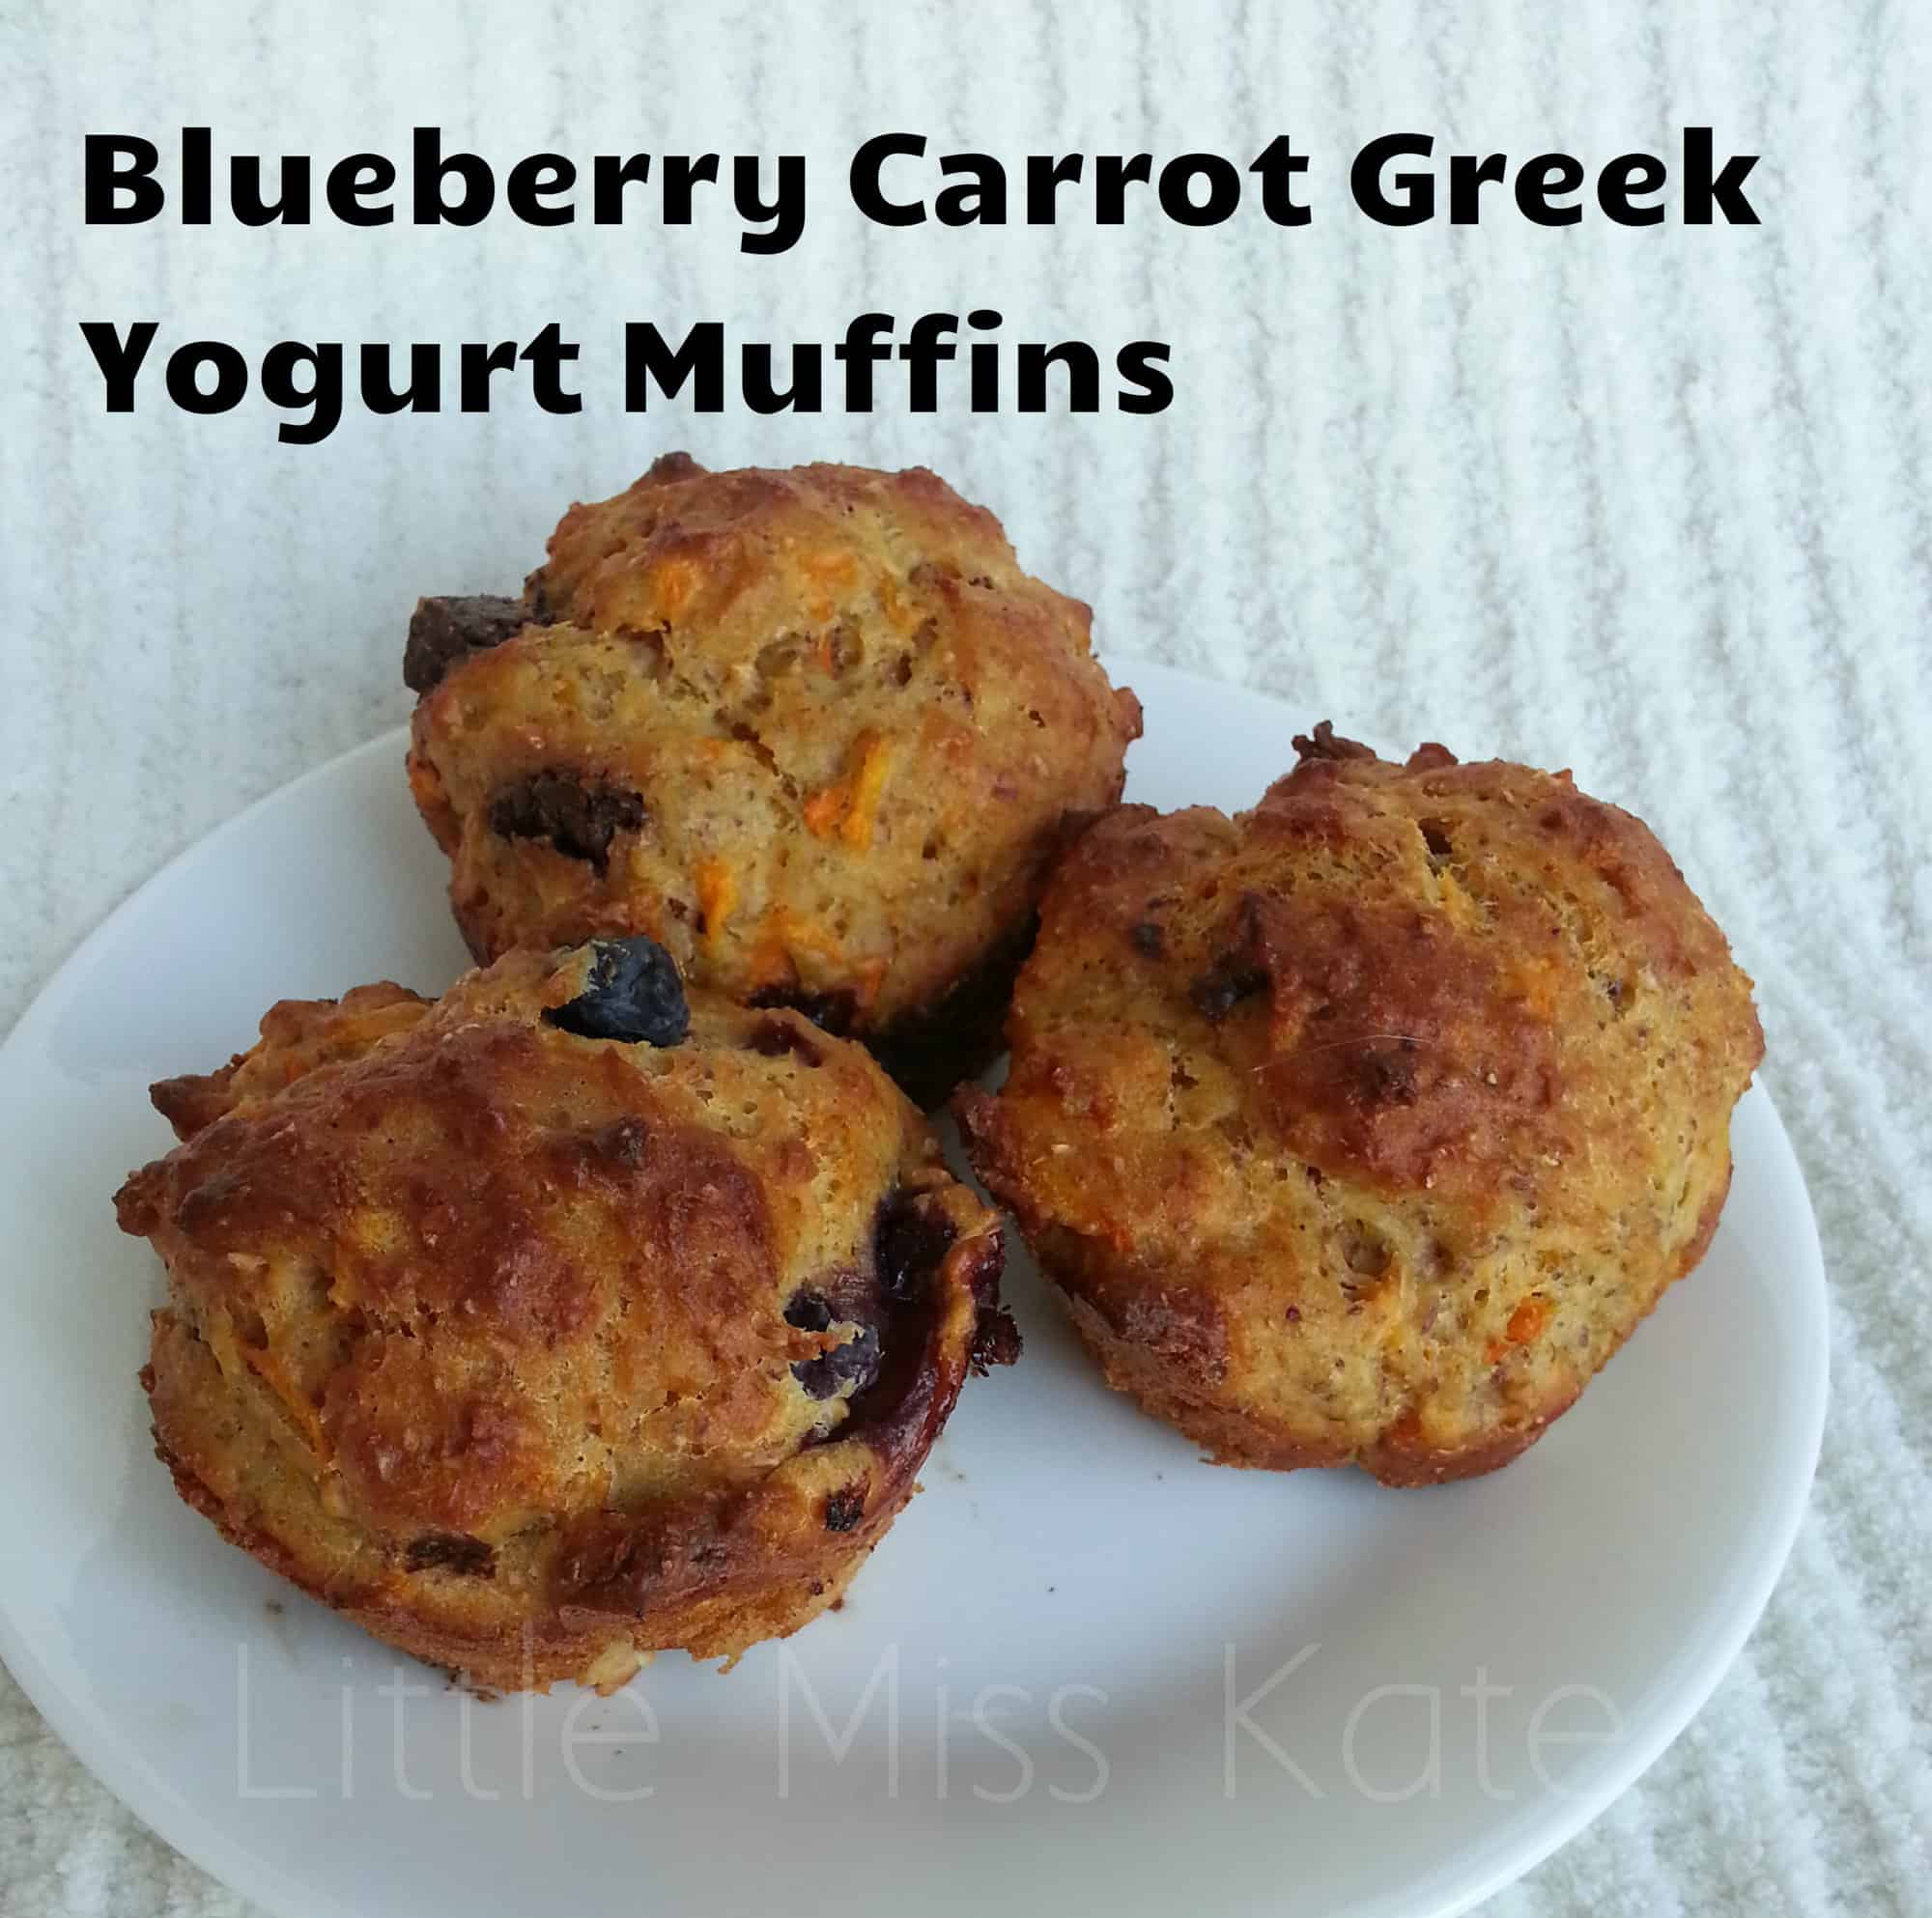 Blueberry carrot muffins